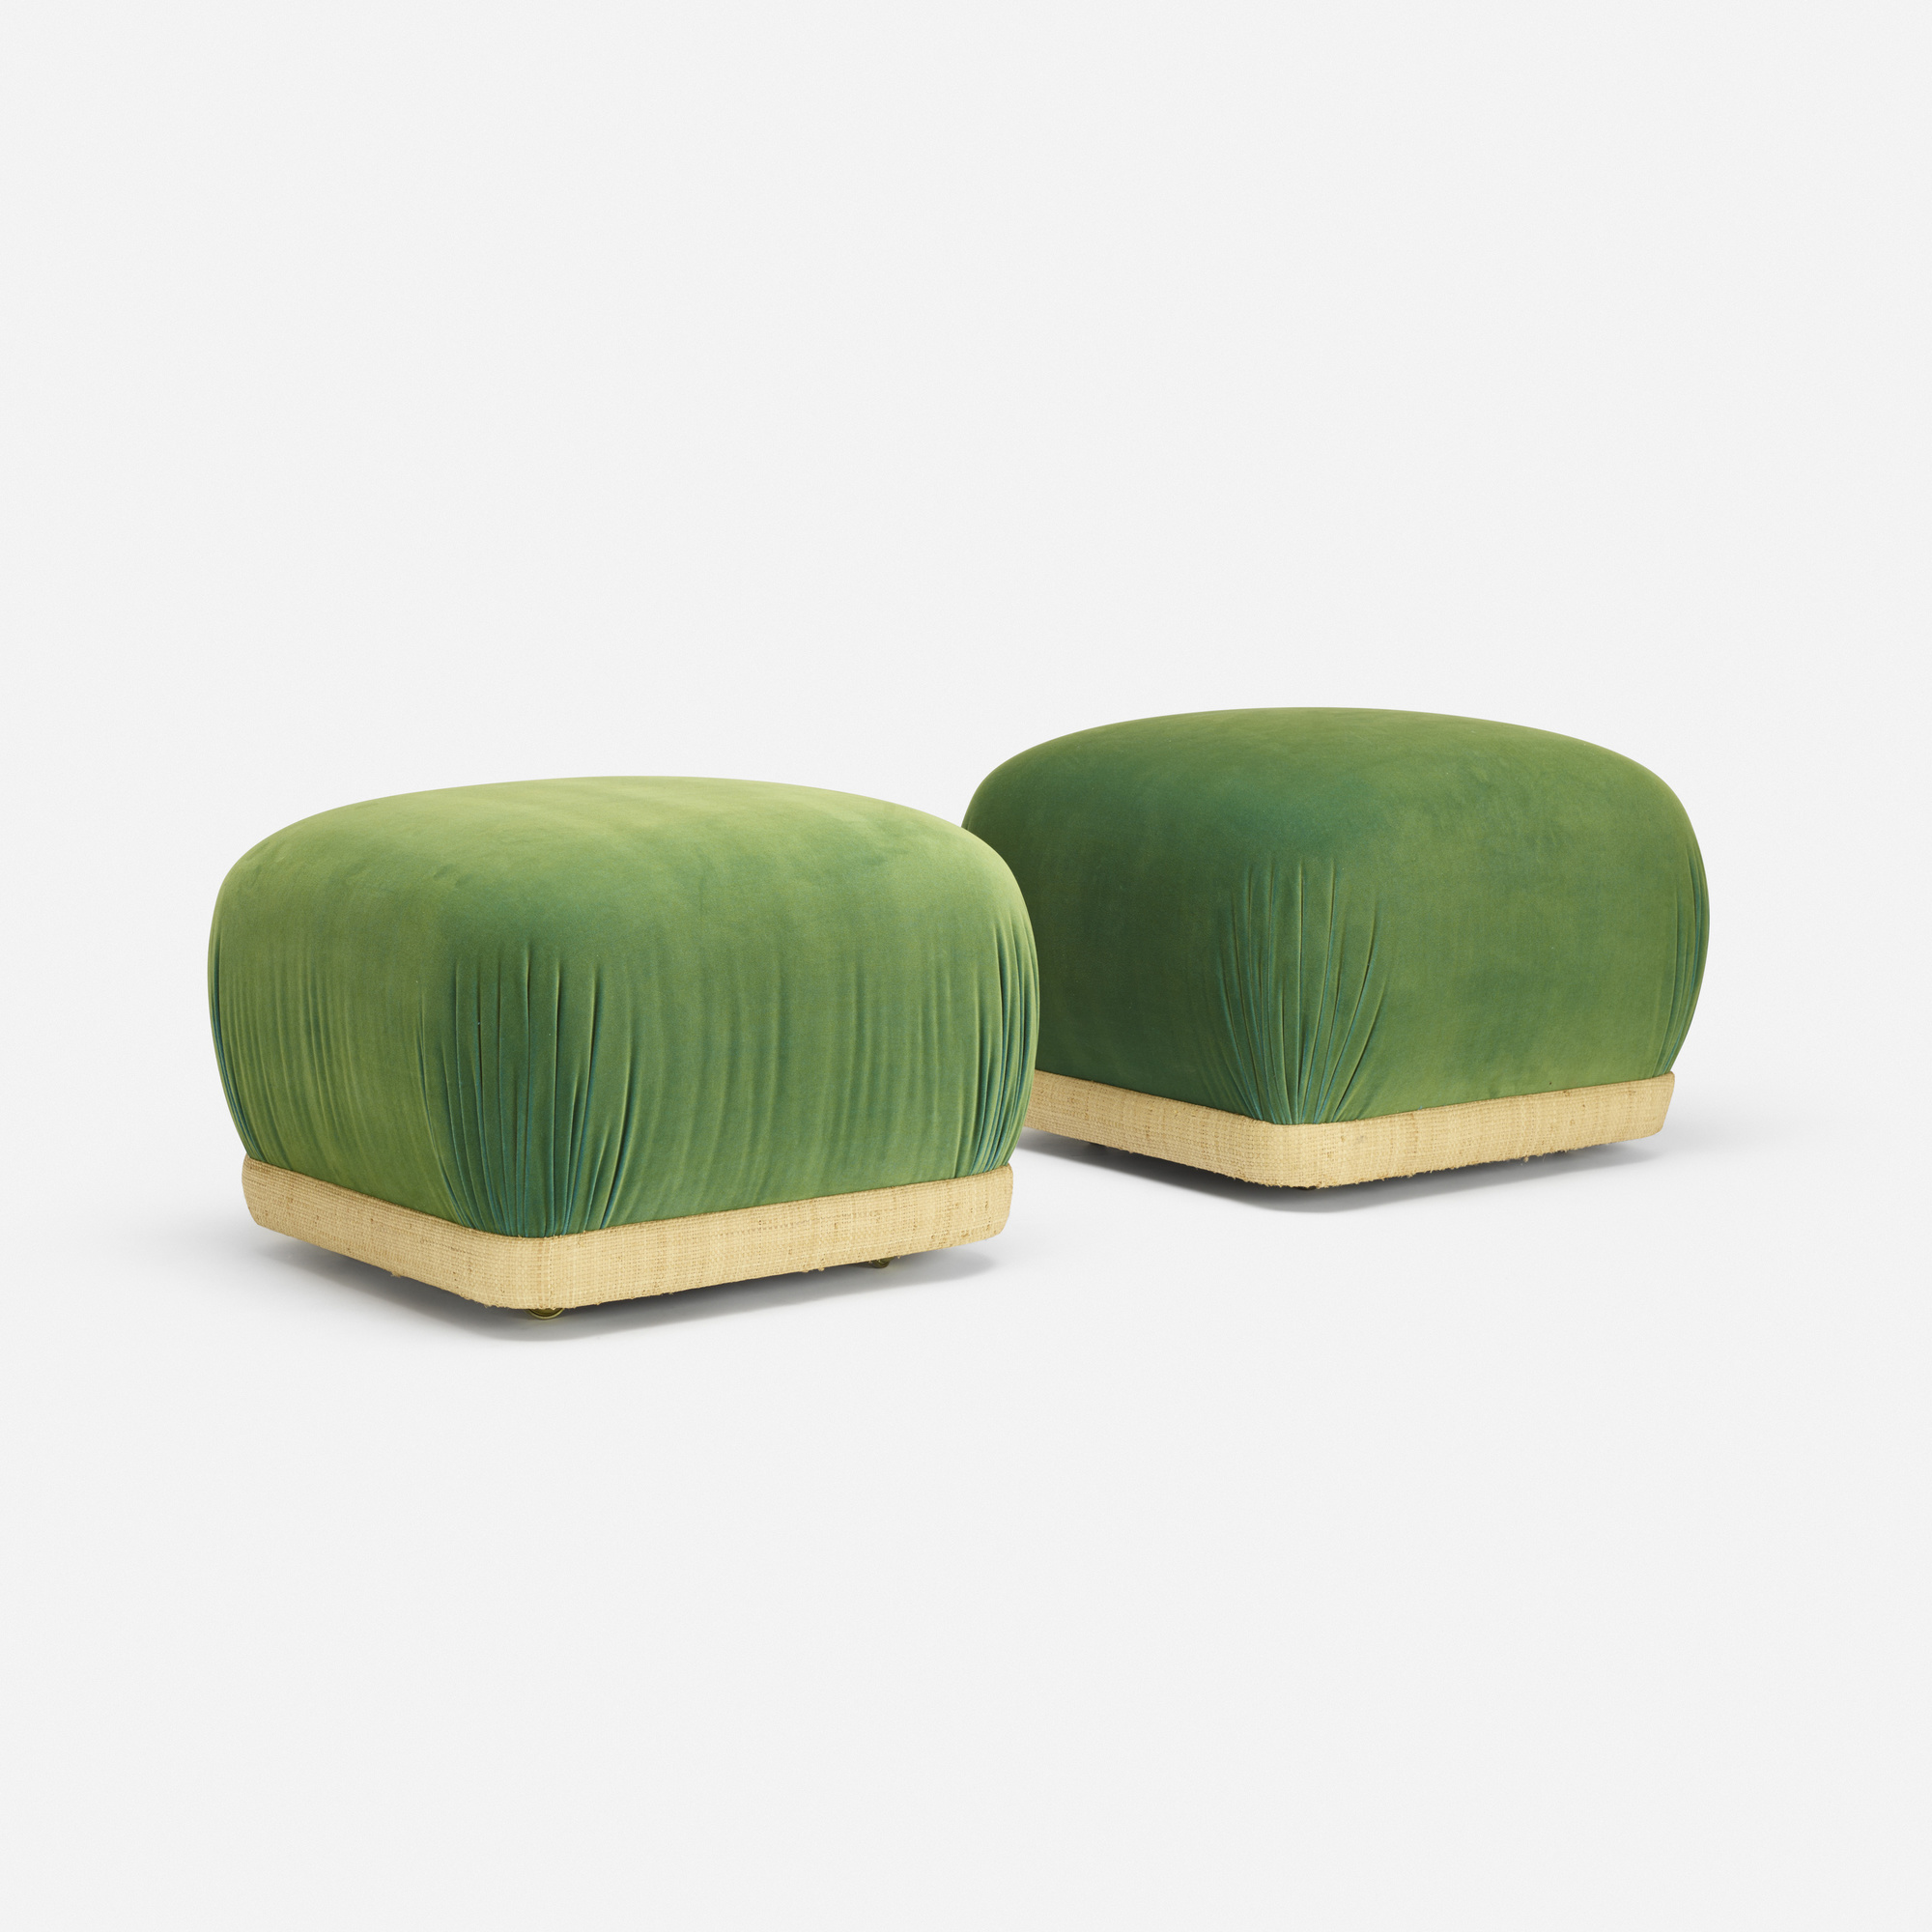 270: After Karl Springer / ottomans, pair (1 of 3)